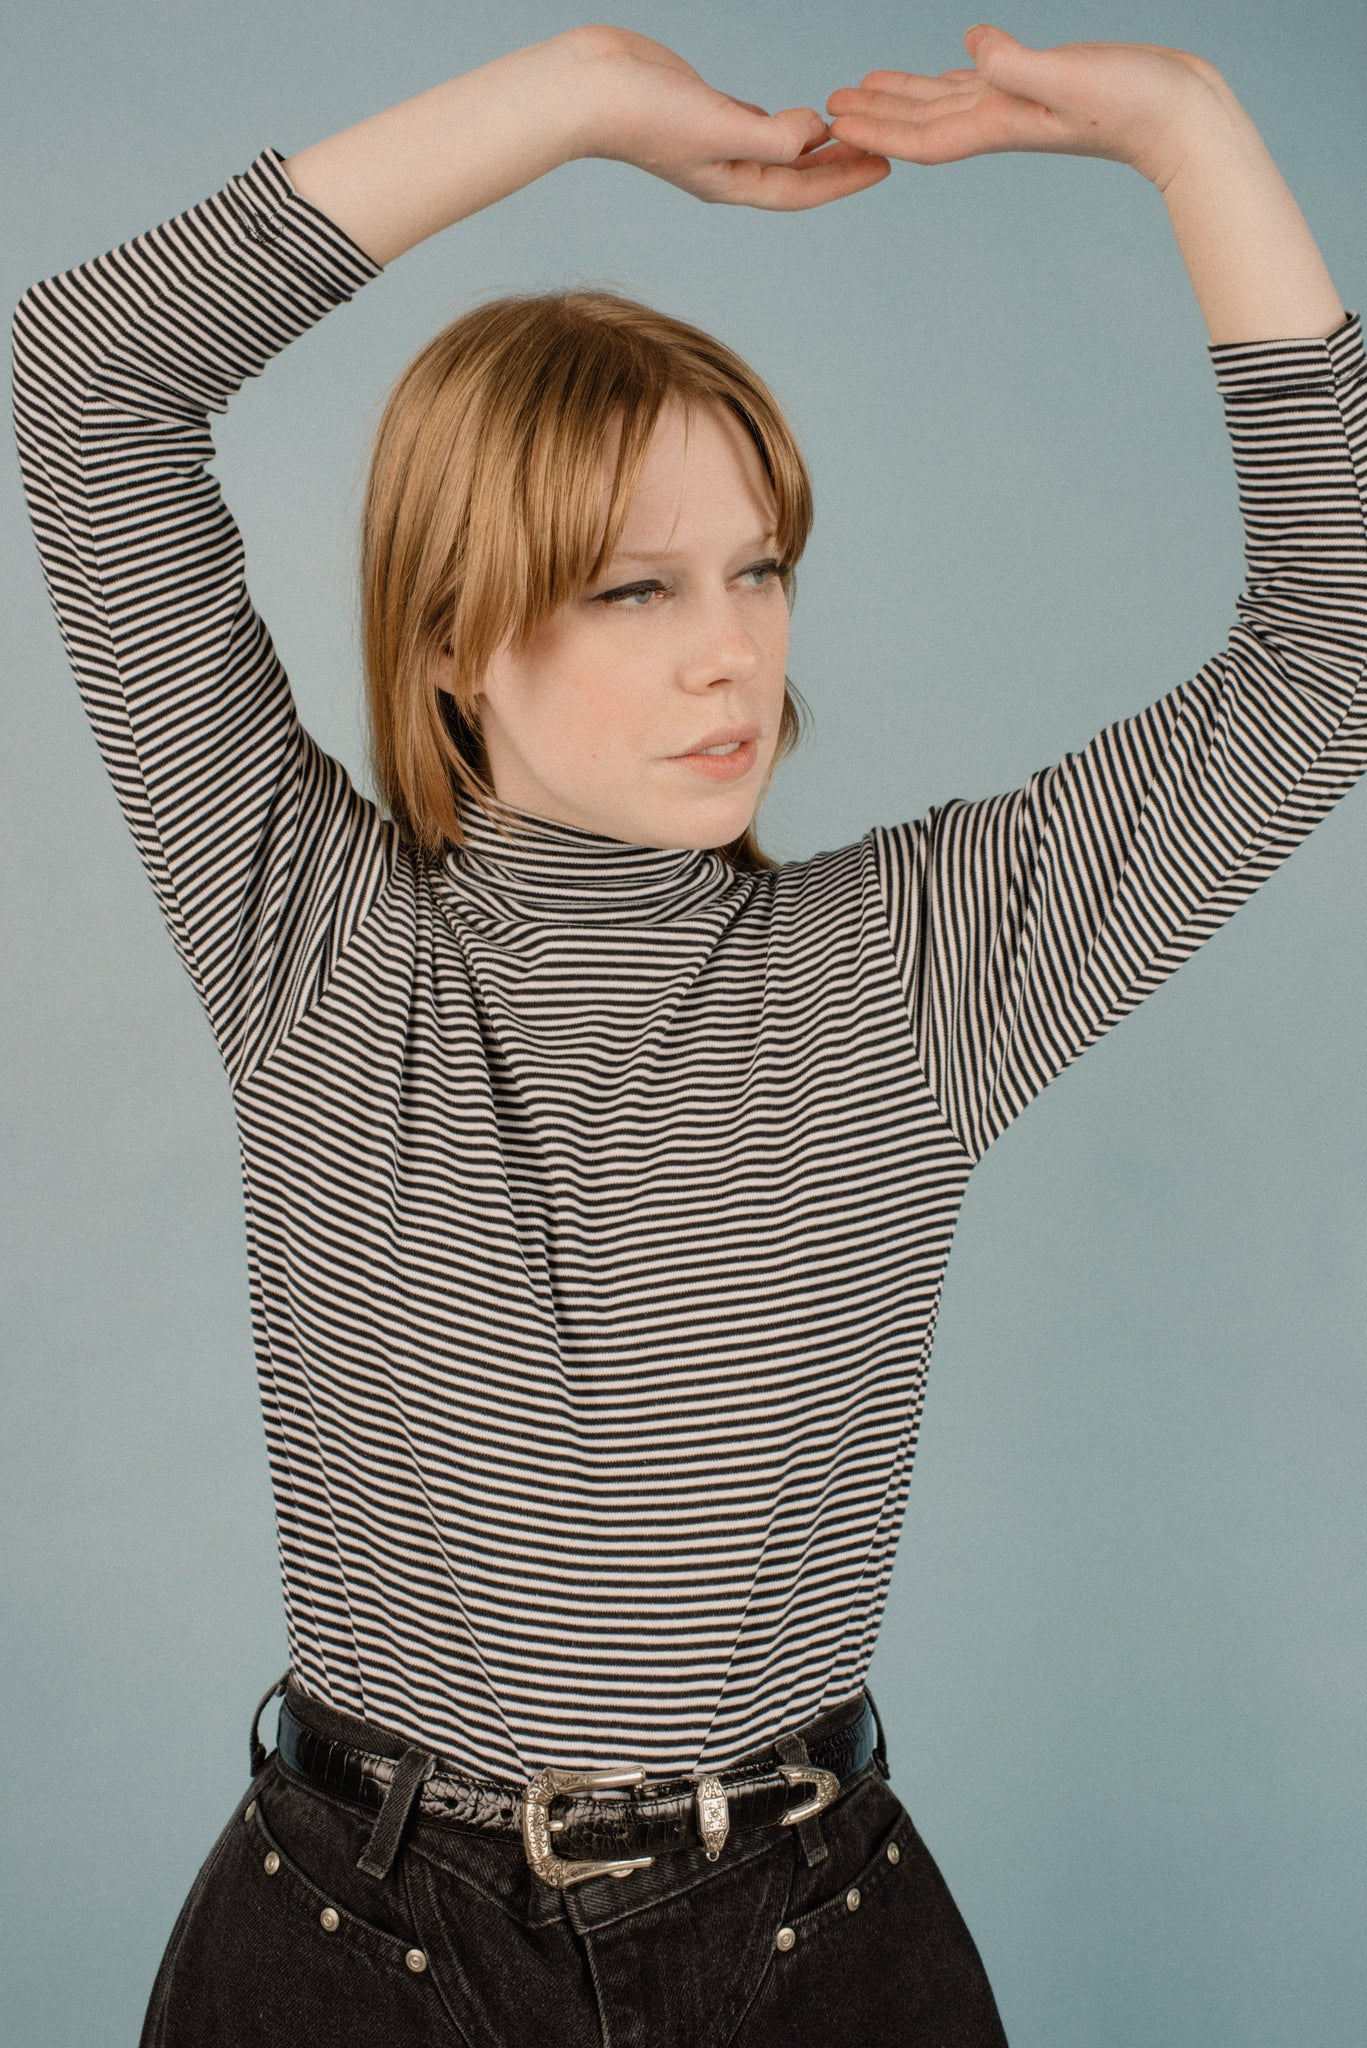 Vintage Black + White Striped Turtleneck / S/M - Closed Caption